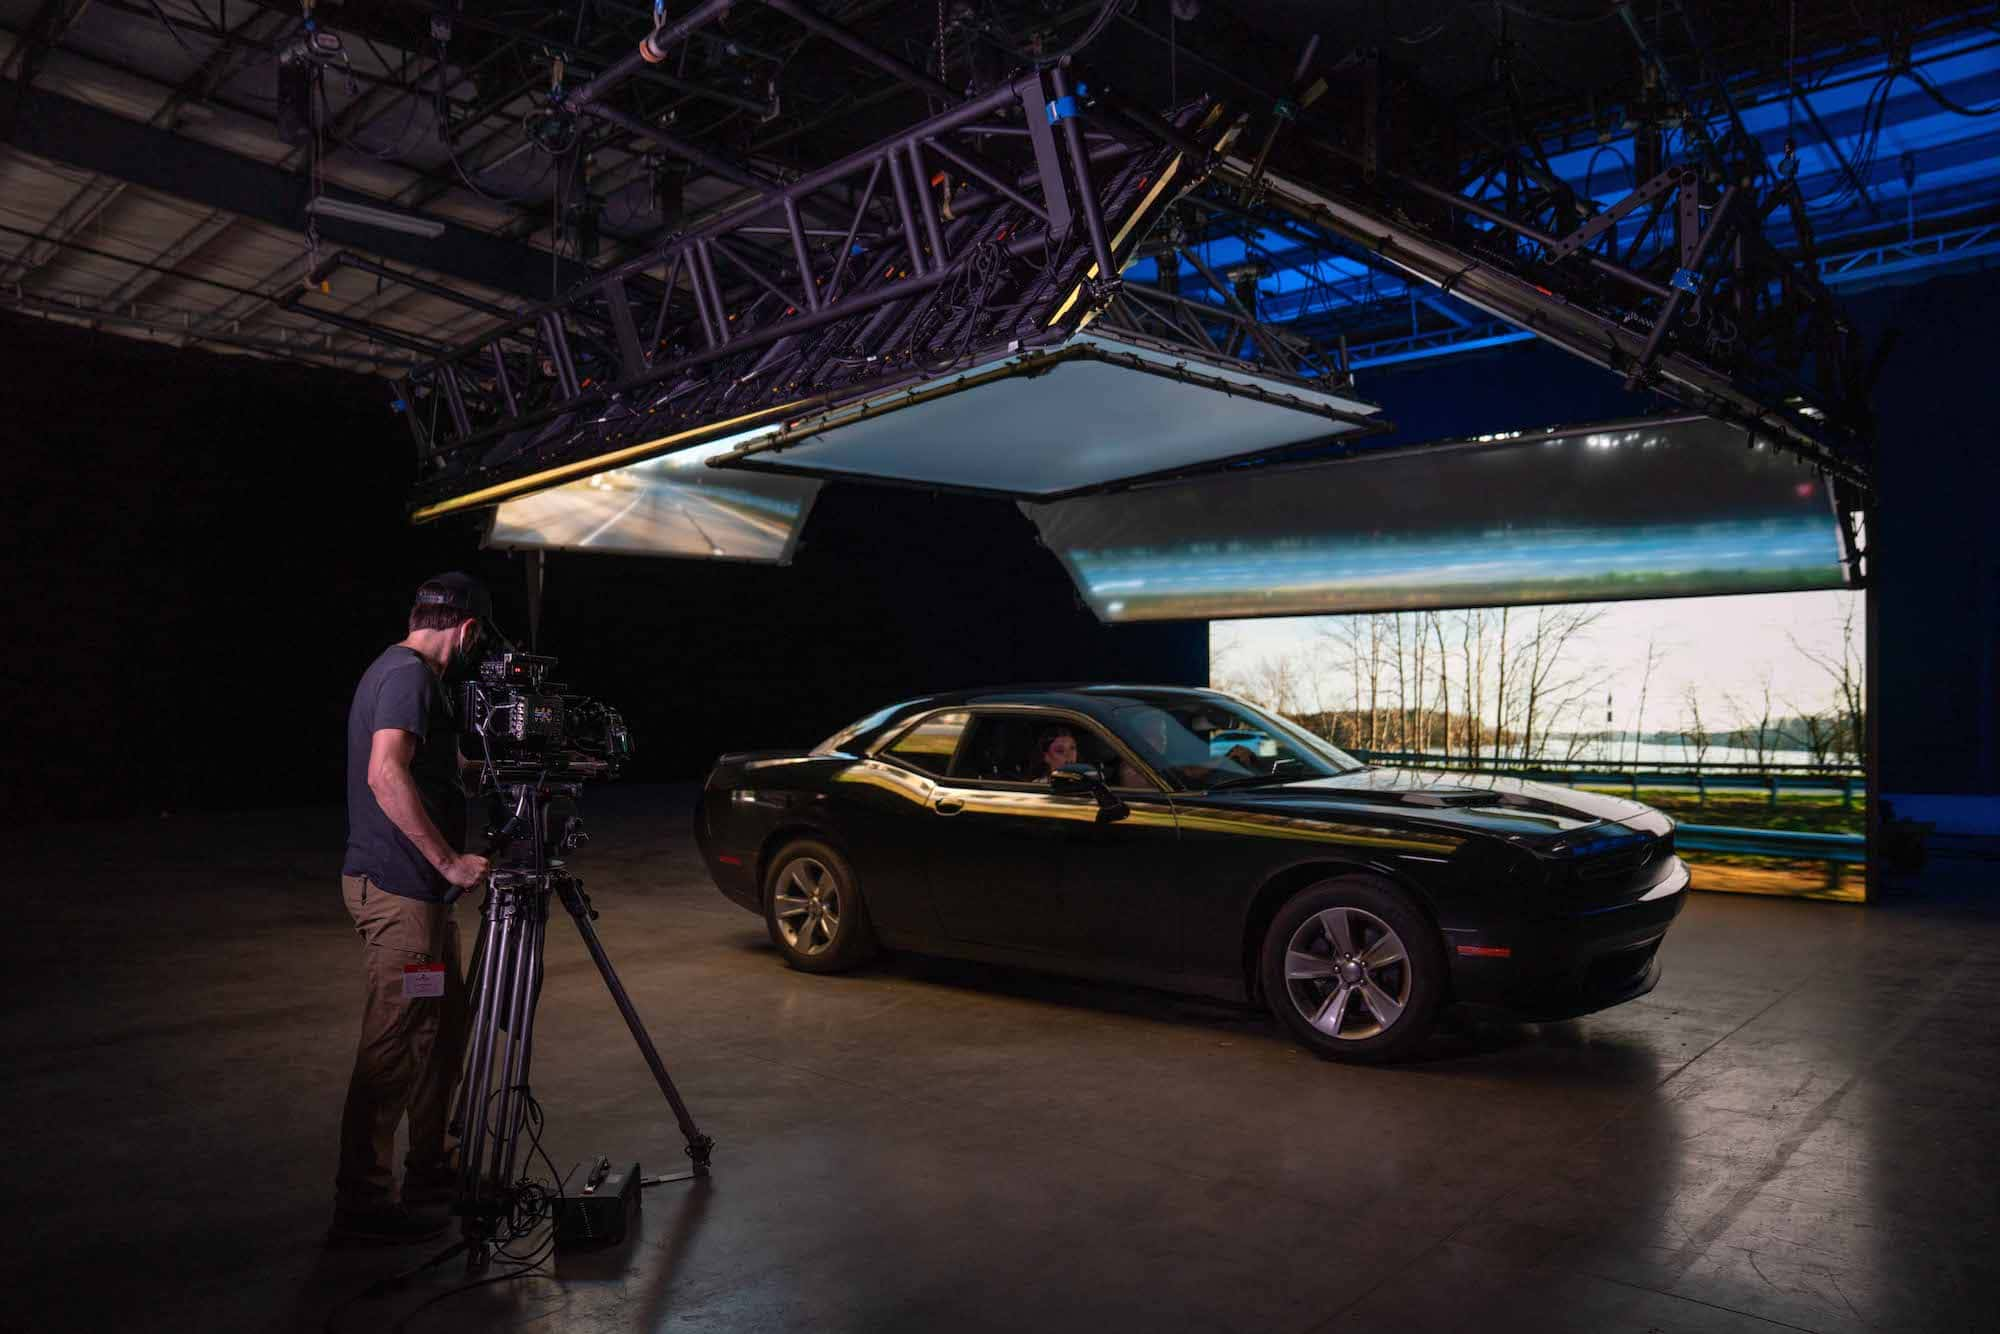 Medium shot of a man filming a car inside of a studio stage. A screen behind the car displays a landscape, mimicking the movement of the car.